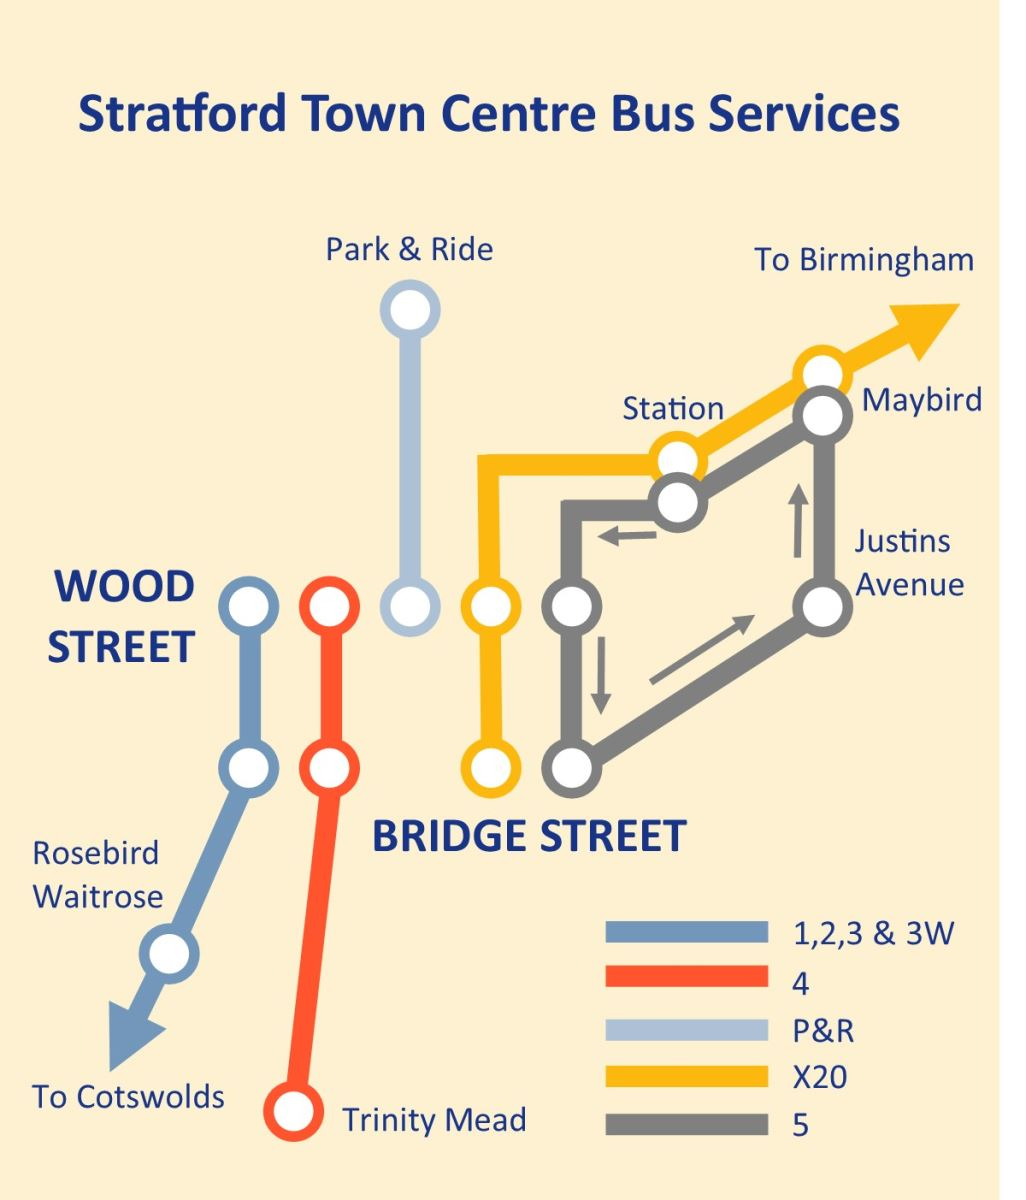 Stratford Town Centre Bus Services Map